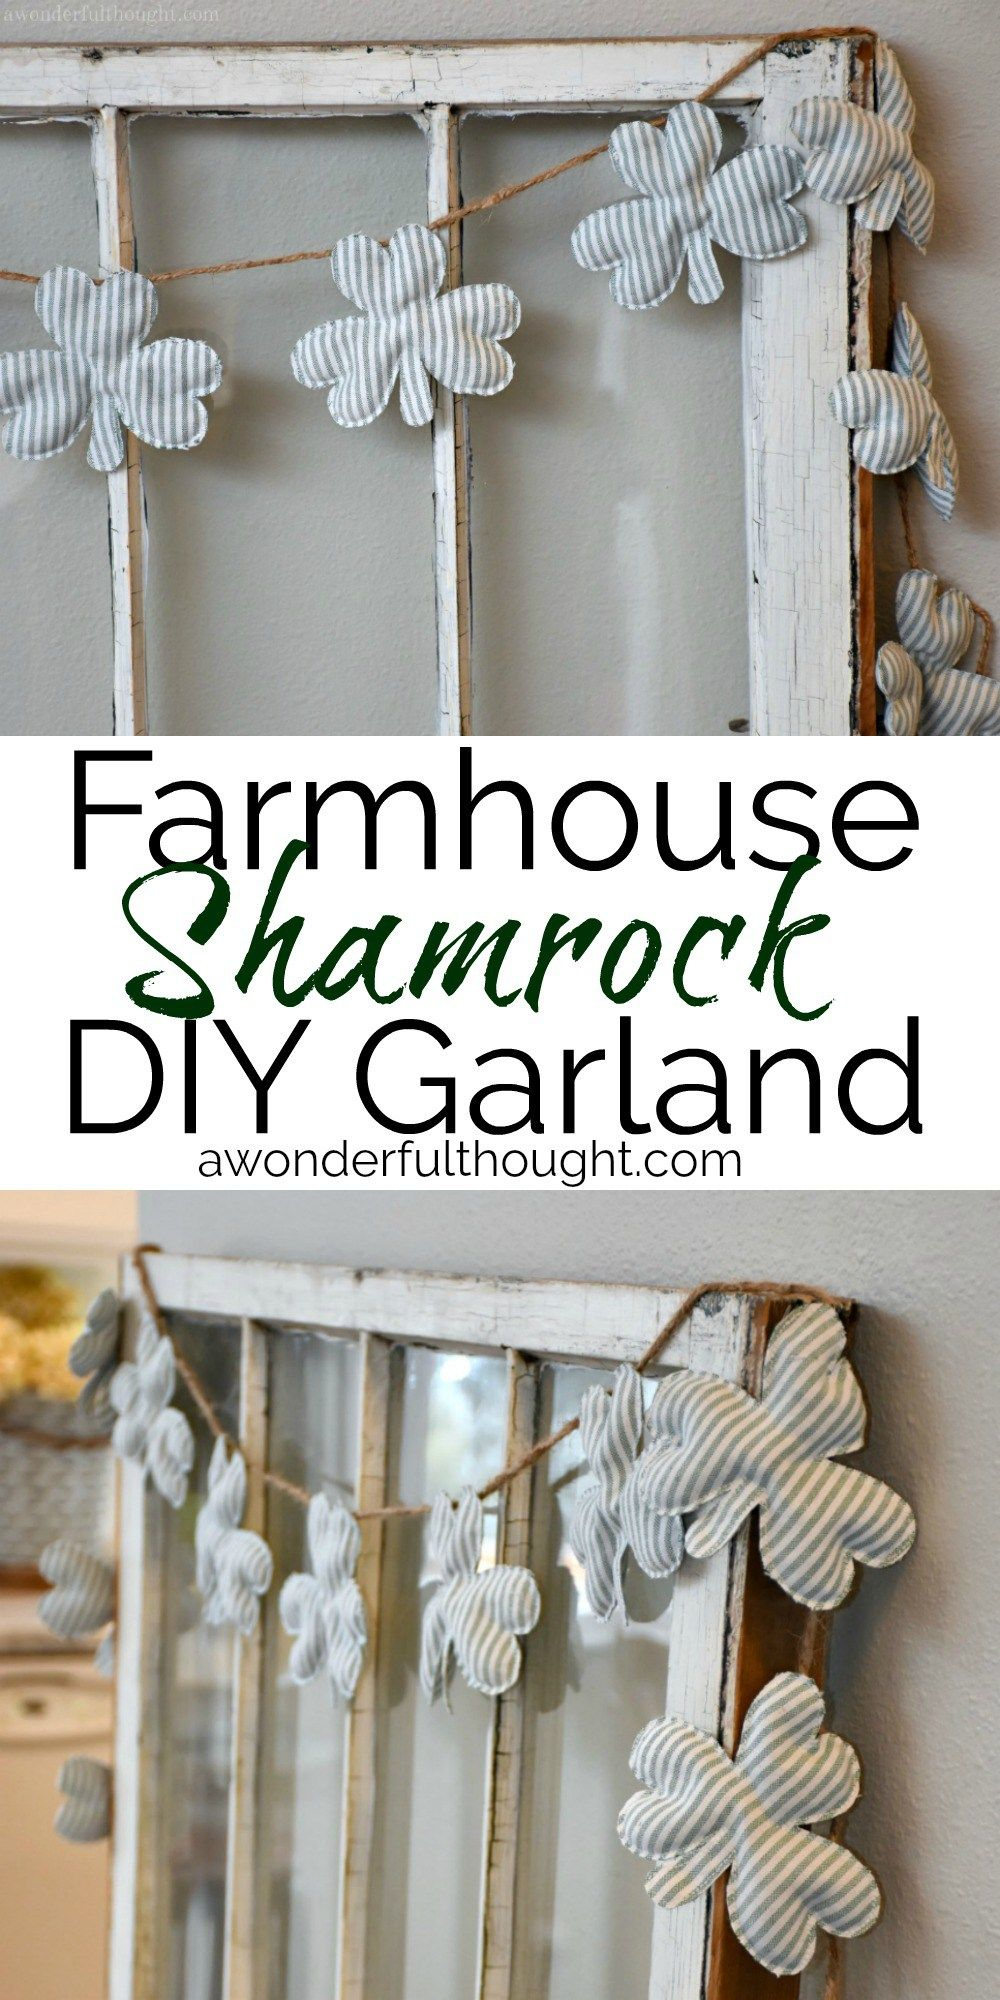 This cute farmhouse shamrock garland is the perfect decor for St. Patrick's Day! #shamrockgarland #stpatricksdaydecor #stpatricksday #awonderfulthought